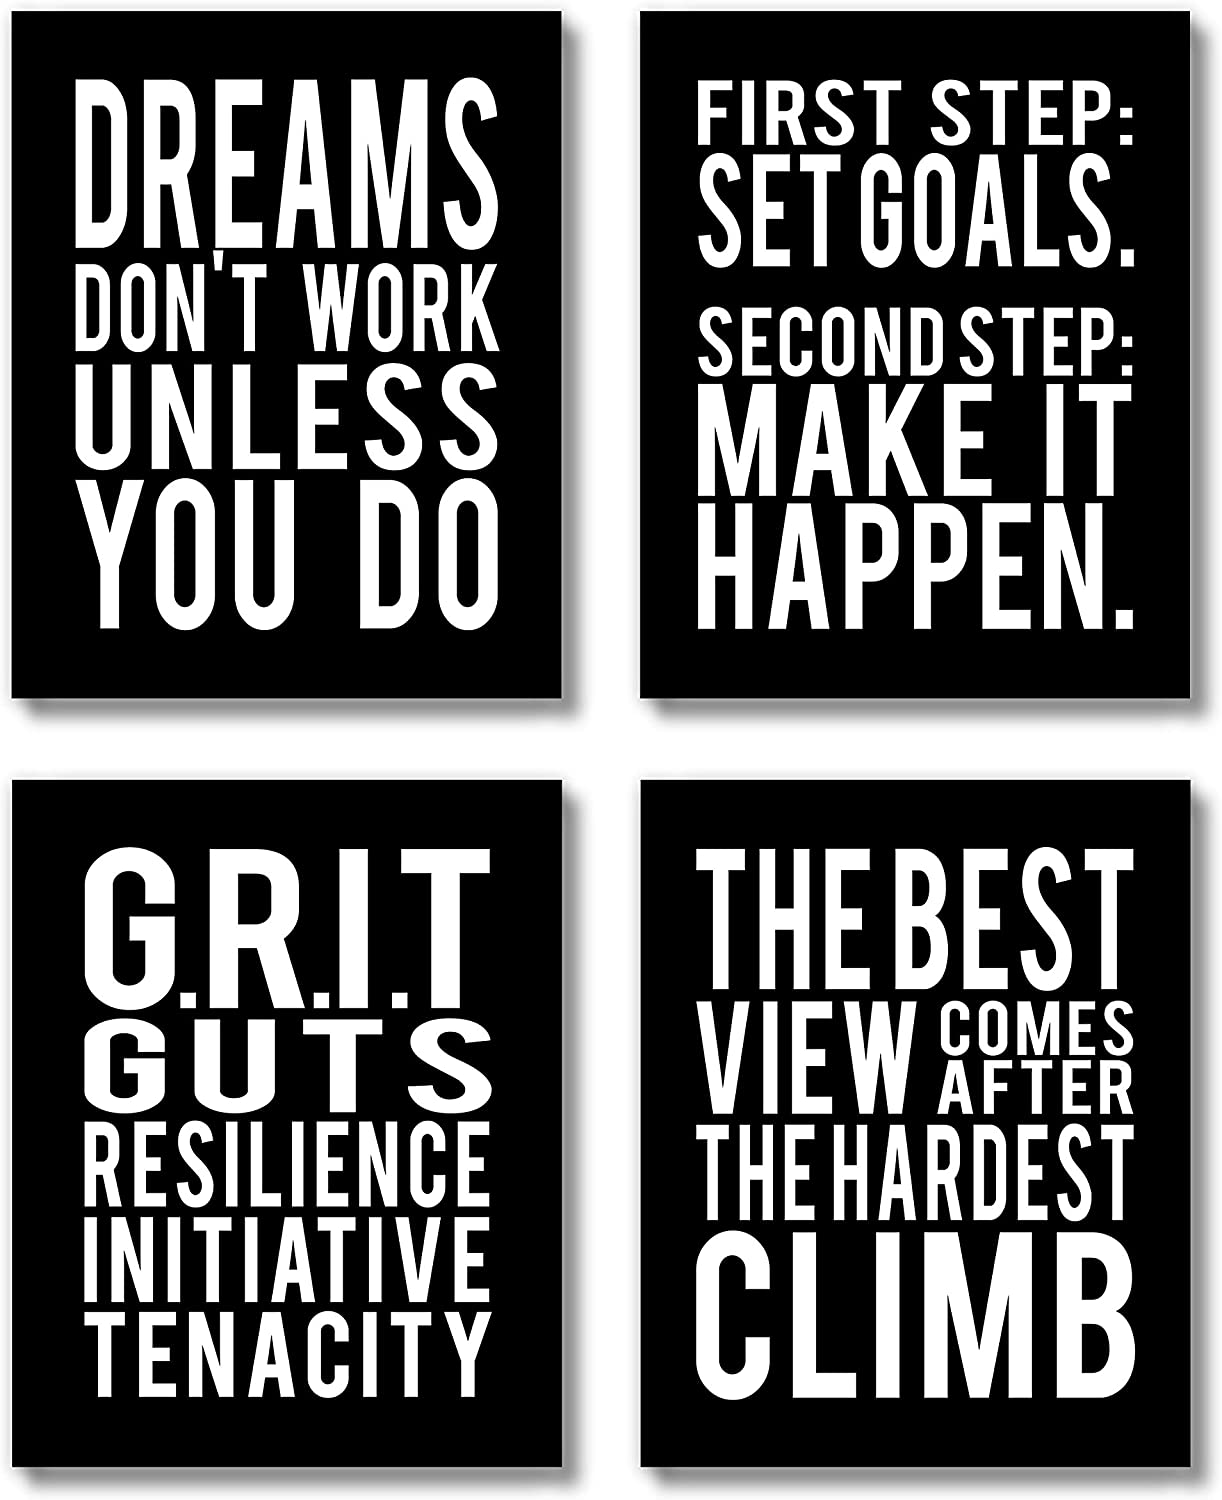 Brooke & Vine Motivational Quotes Wall Decor Posters Inspirational Wall Art Prints (UNFRAMED 8 x 10 Set of 4) Classroom Decorations - Office, Bedroom, Dorm, Cubicle, Gym - Goals, Grit - Black